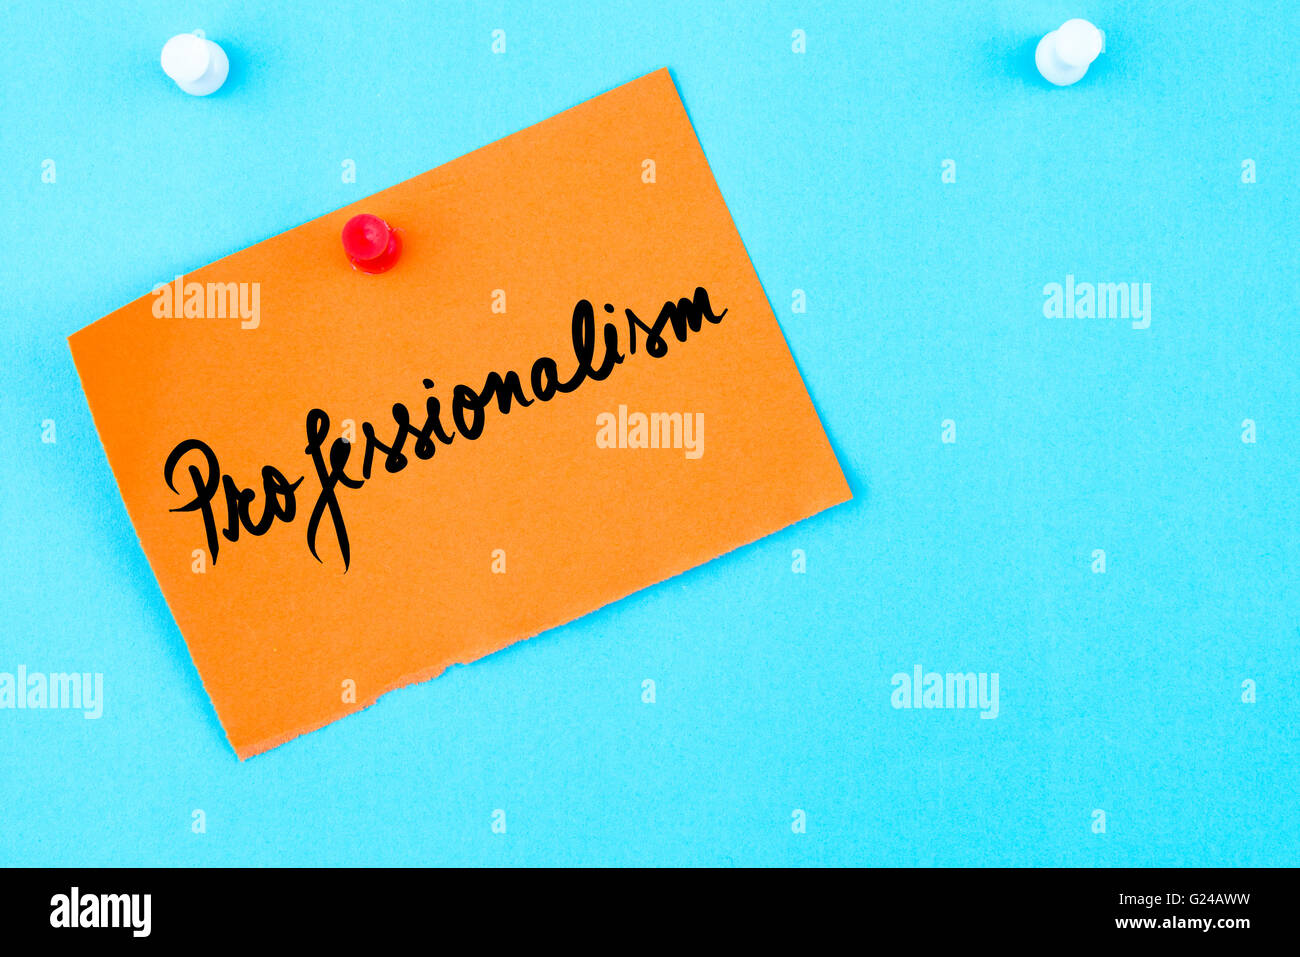 Professionalism written on orange paper note pinned on cork board with white thumbtack, copy space available - Stock Image